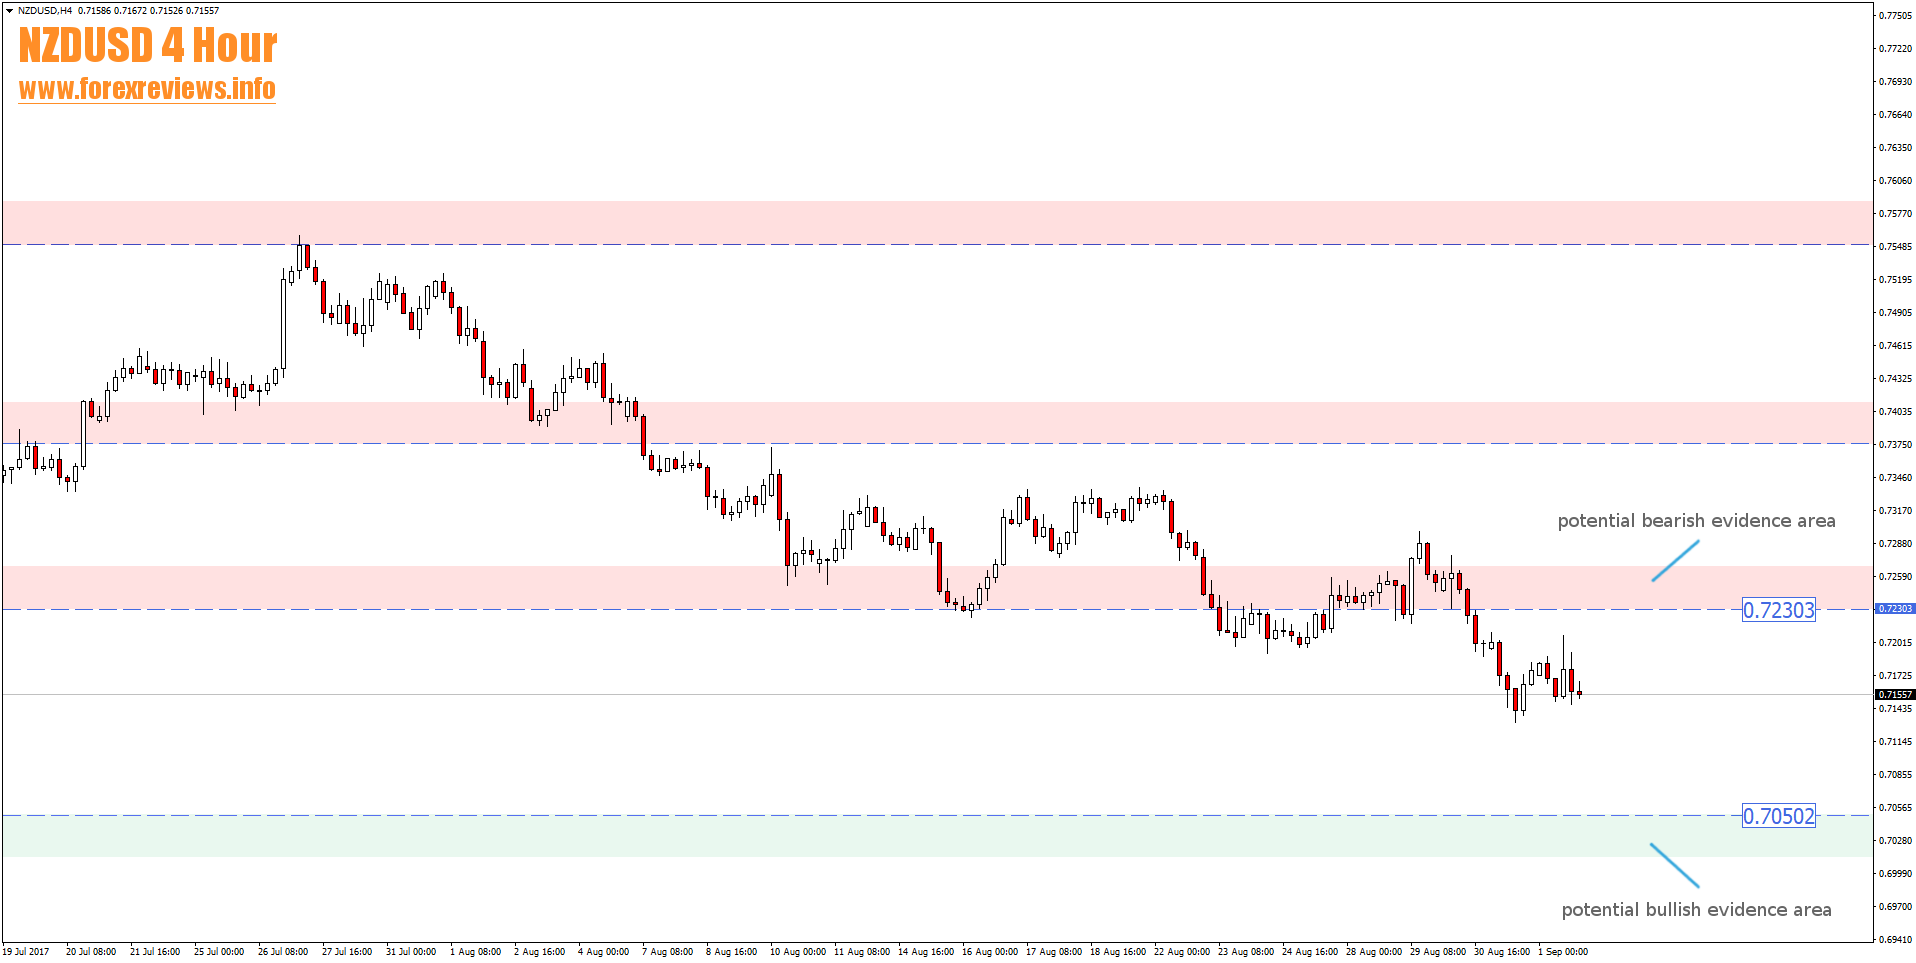 nzdusd 4 hour trading areas-4th to 8th of september